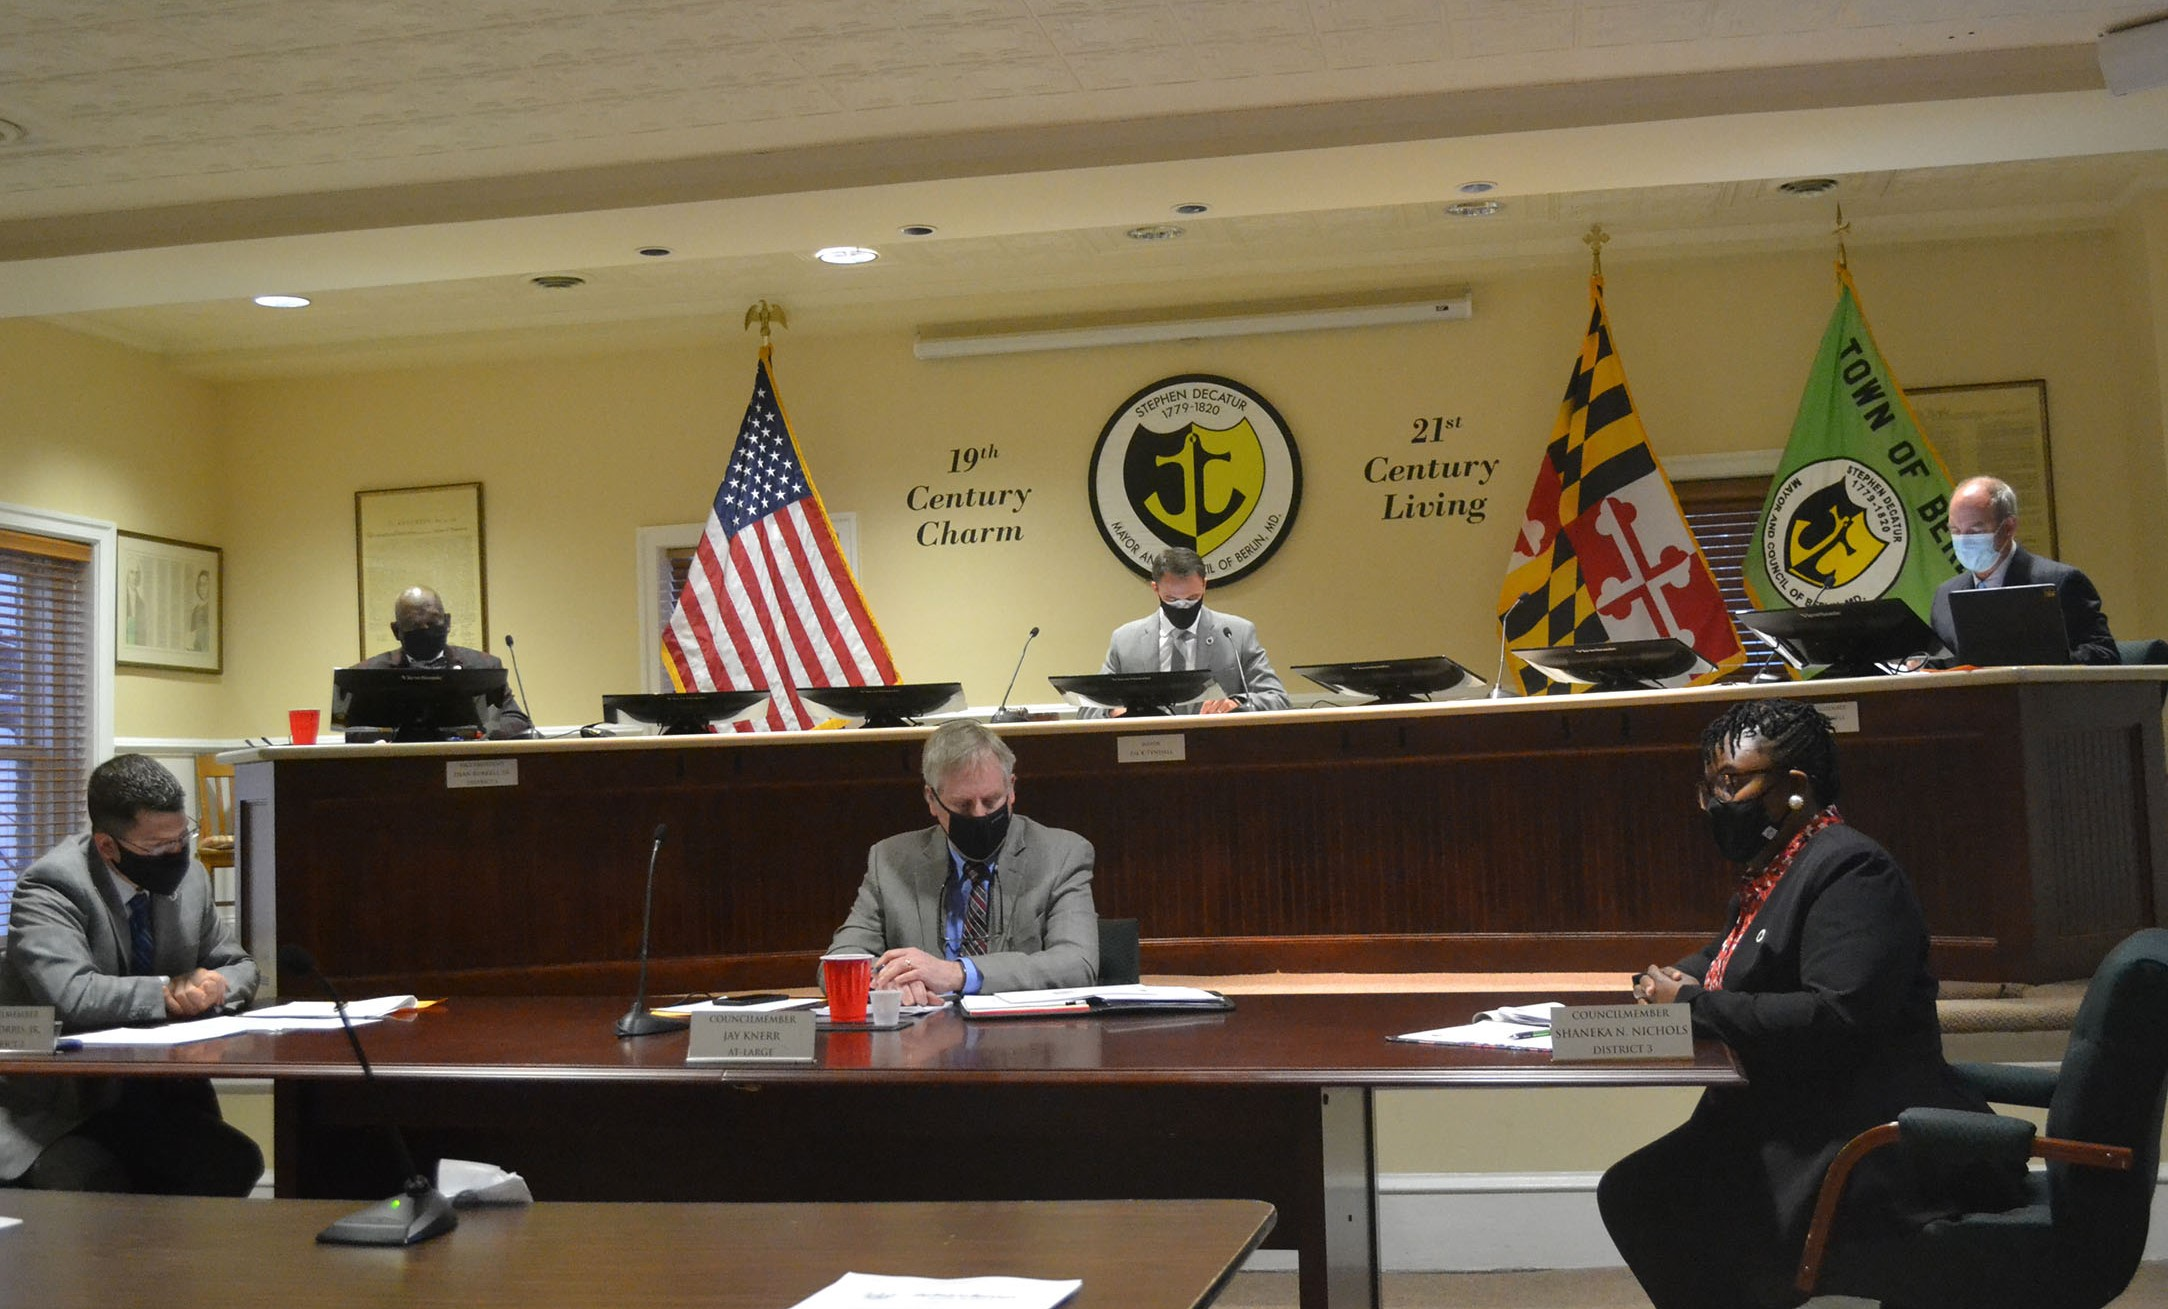 Berlin Officials Frustrated With Mayor's Budget Approach; Tyndall Defends Flat Tax Rate Proposal Amid Transparency Concerns